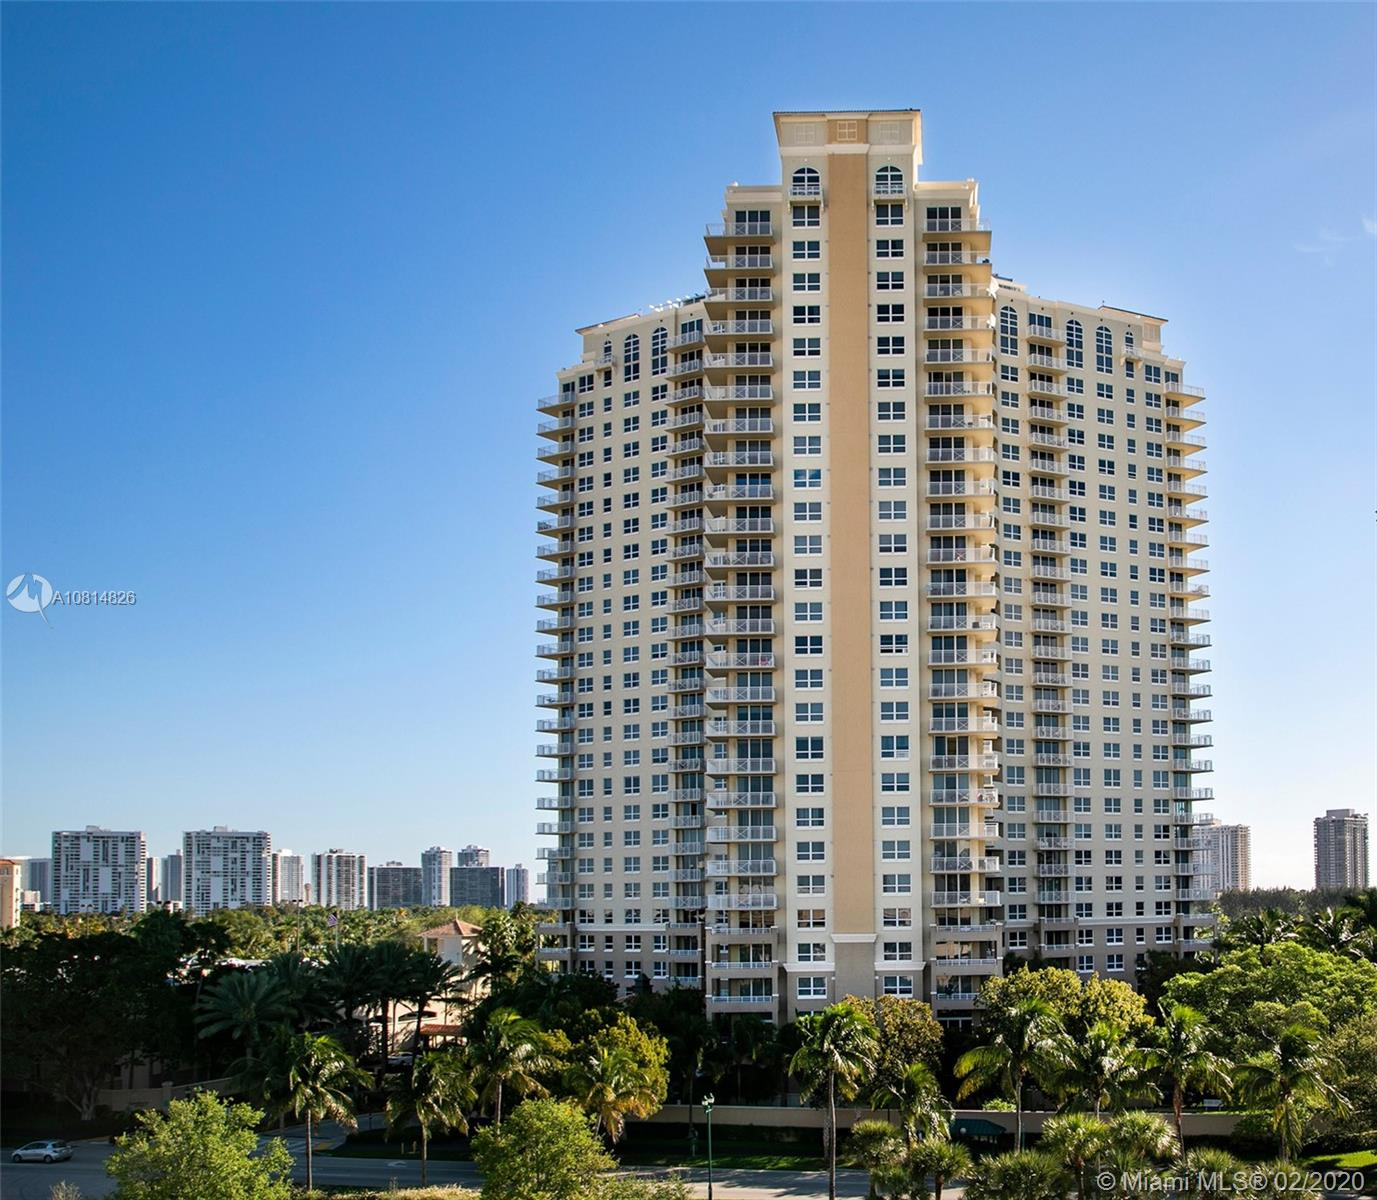 19501 W Country Club Dr #2606 For Sale A10814826, FL